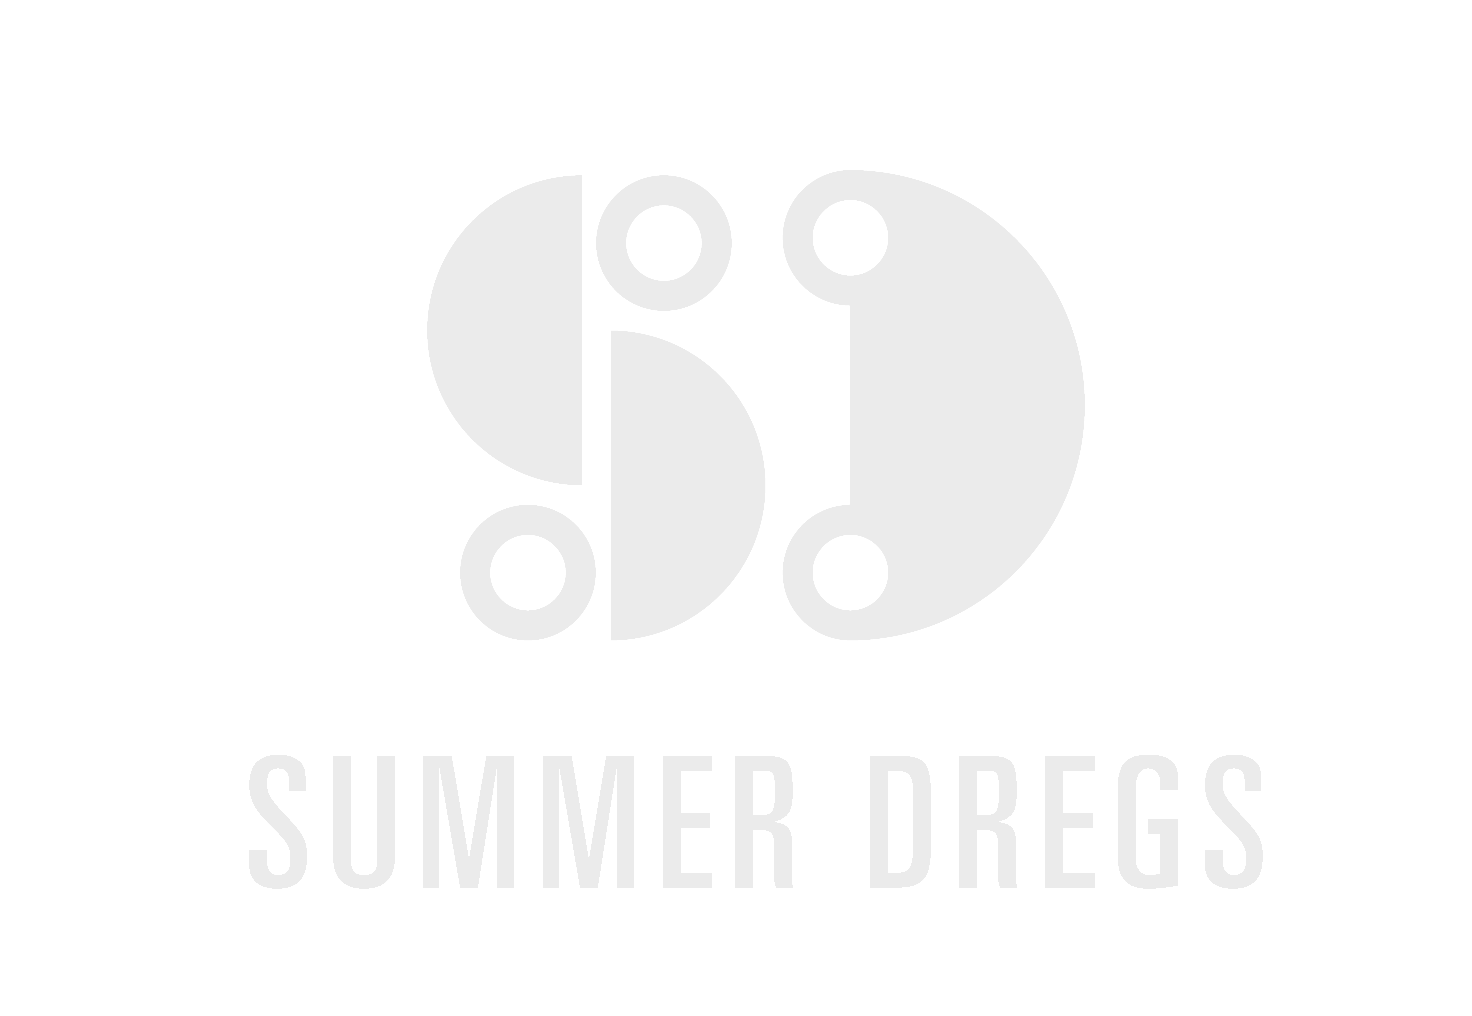 Summer Dregs